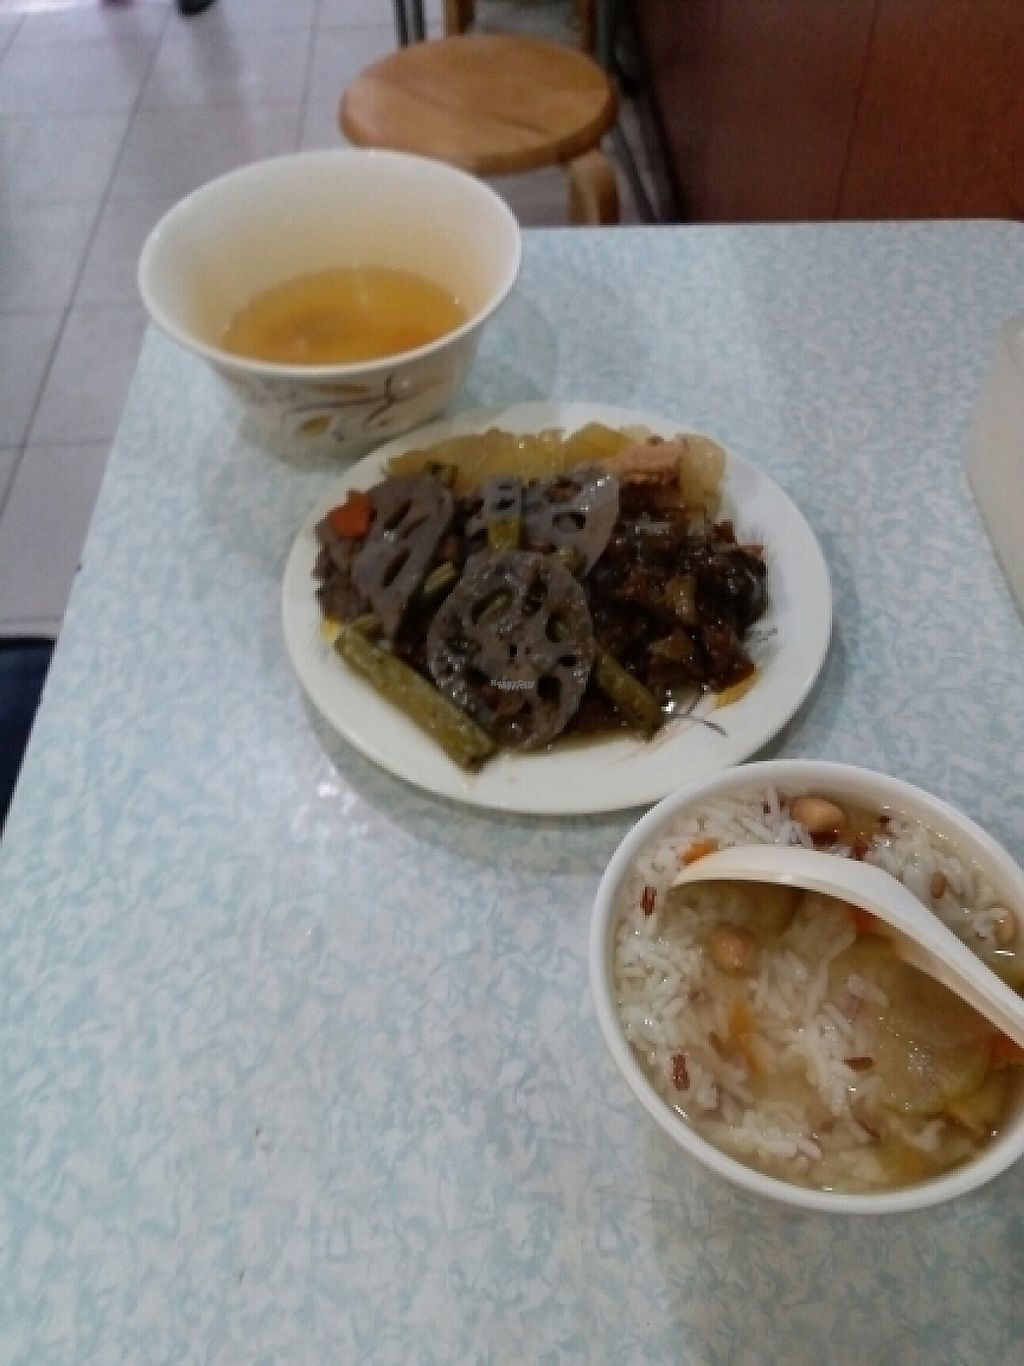 """Photo of Kam Heung Vegetarian - Fortress Hill  by <a href=""""/members/profile/ouikouik"""">ouikouik</a> <br/>kam heung  <br/> December 25, 2016  - <a href='/contact/abuse/image/48002/204566'>Report</a>"""